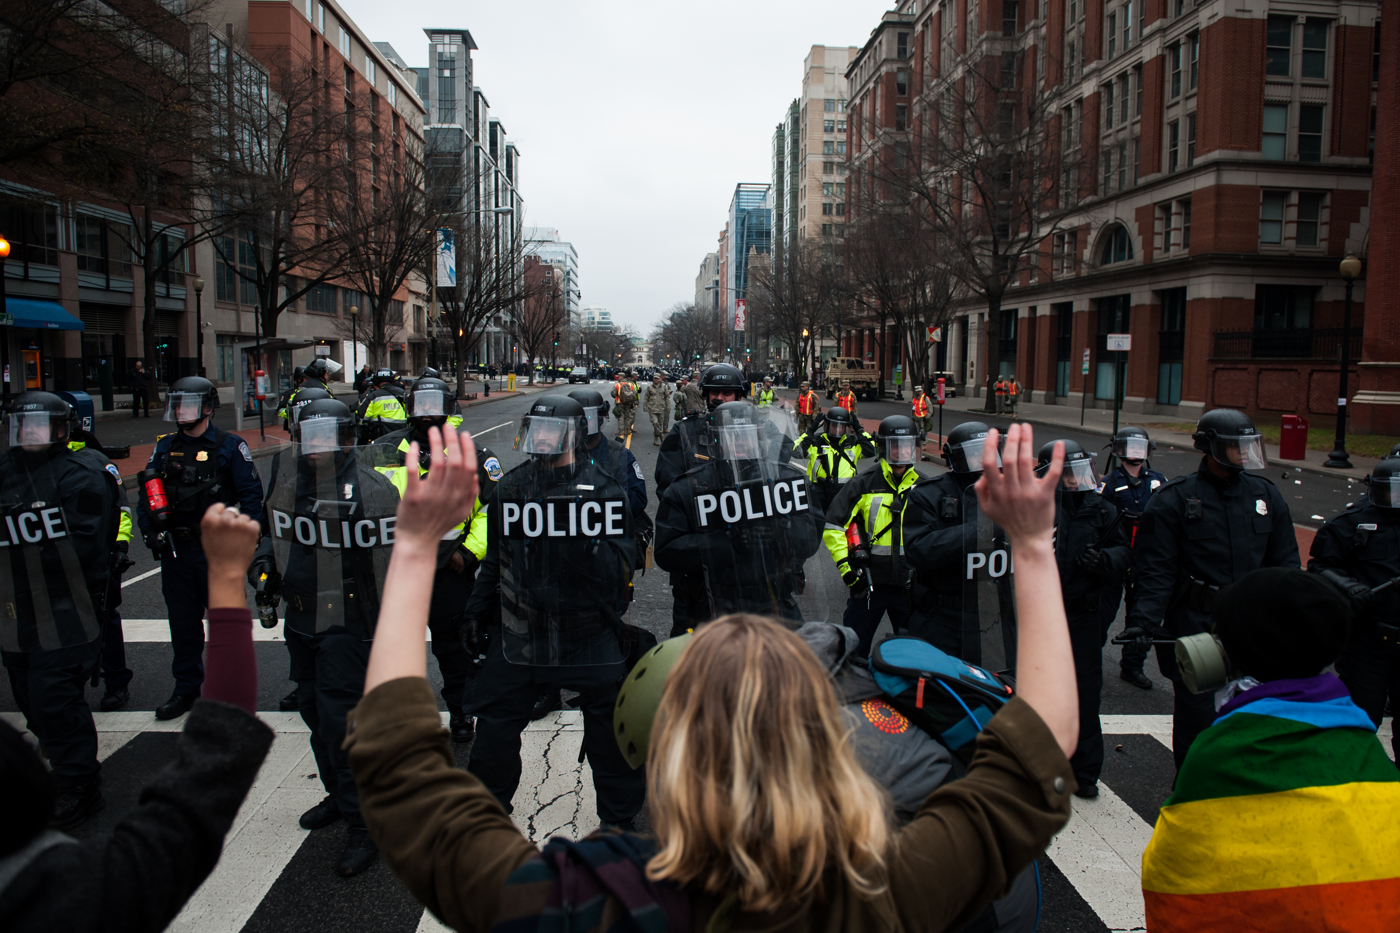 D.C. Metropolitan Police officers hold a line against protestors on the day of the President Donald Trump's inauguration as the 45th President of the United States in Washington, D.C., on January 20, 2017. Credit: Mark Kauzlarich for CNN